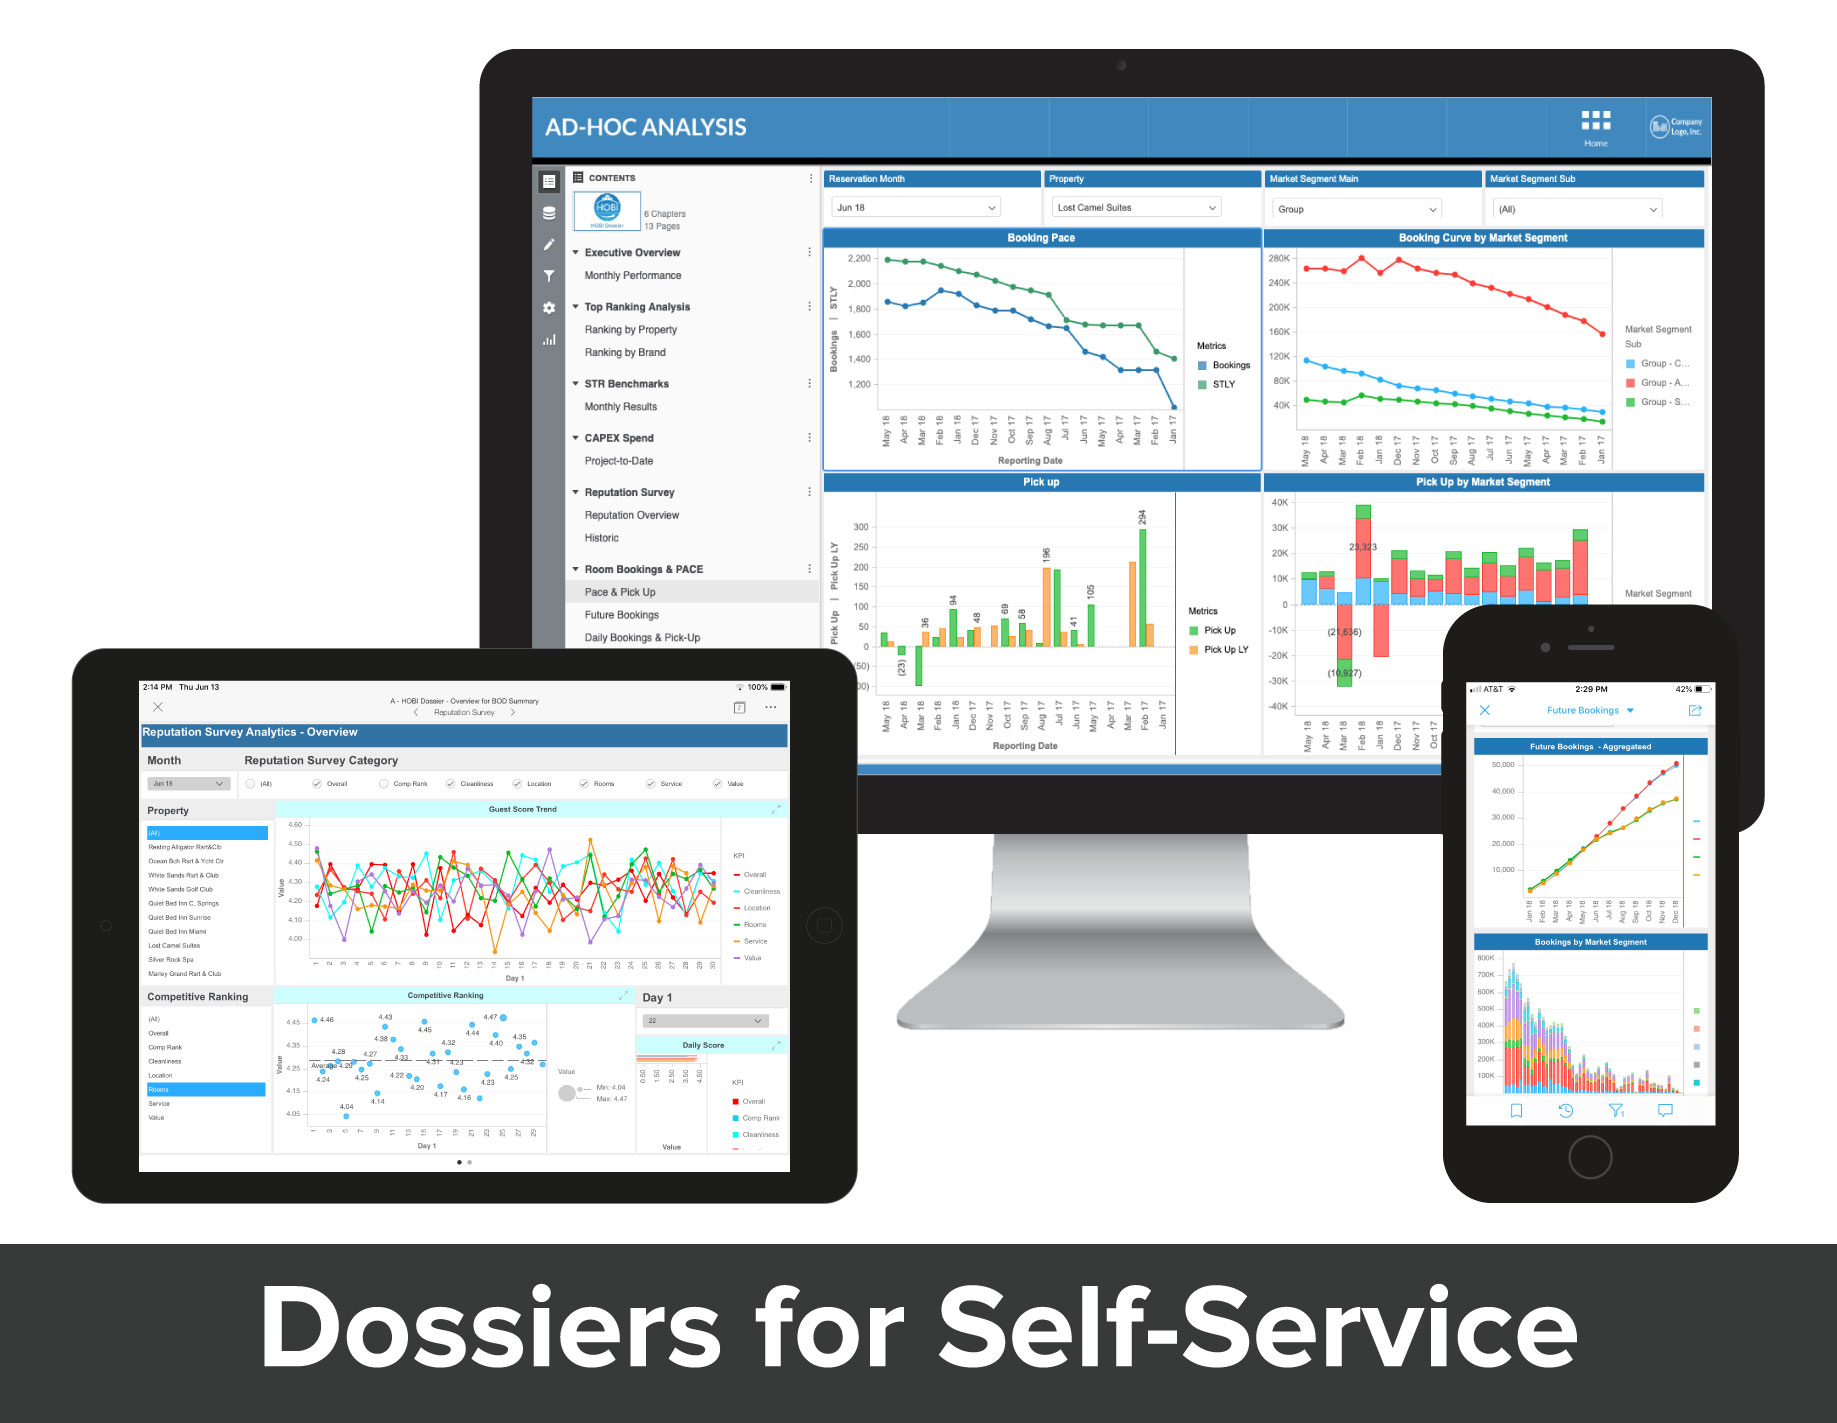 Gallery_12_Dossiers-for-Self-Service.jpg